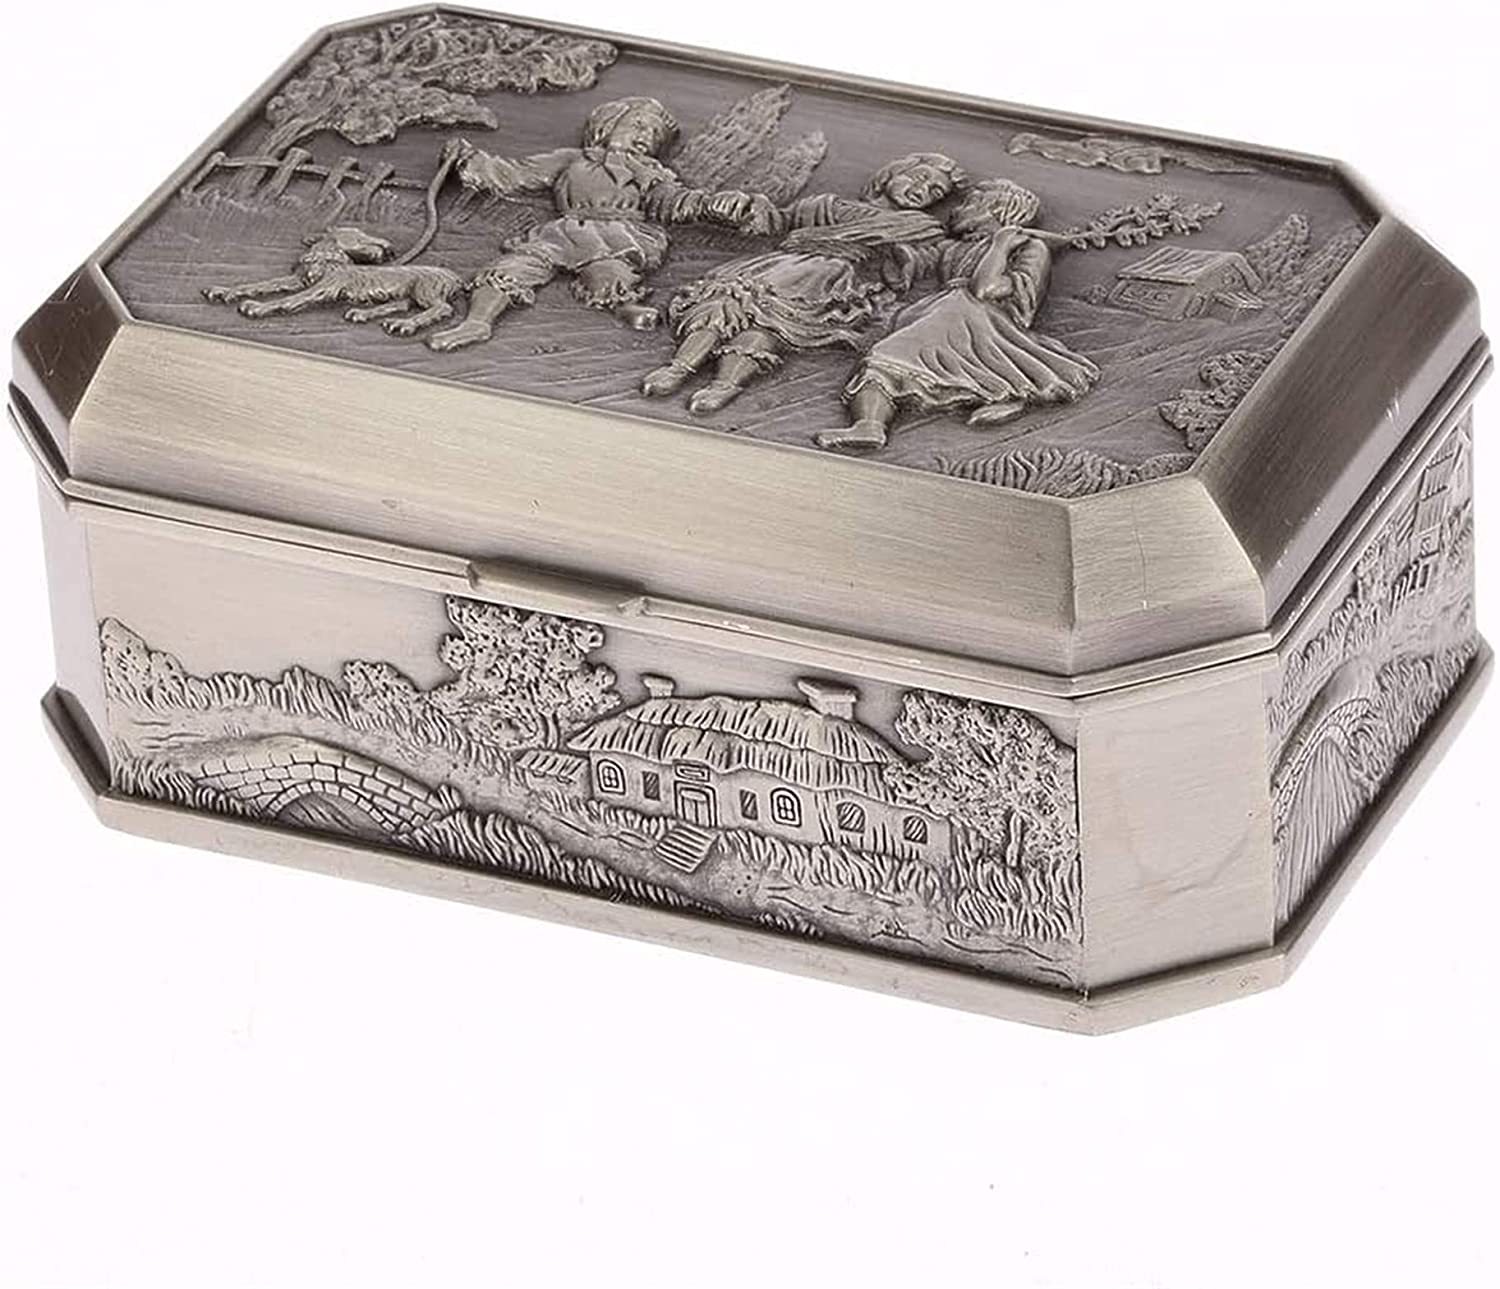 NICEAPR Decorations Retro Clearance SALE! Limited time! European Embossed Home Box Jewelry Ranking TOP14 Liv